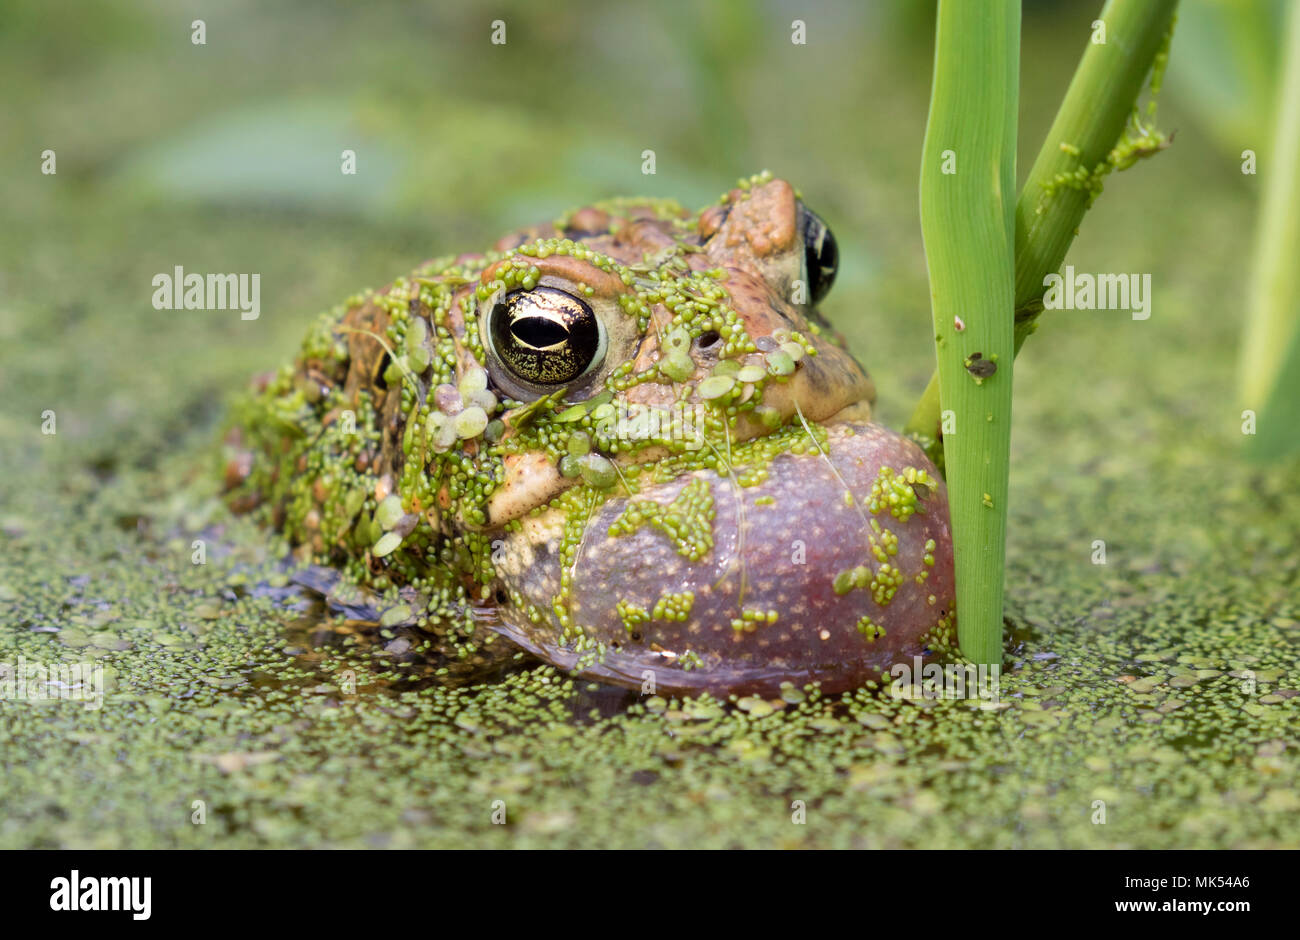 Male American toad (Anaxyrus americanus) calling sac inflated, covered with duckweed, Iowa, USA. - Stock Image